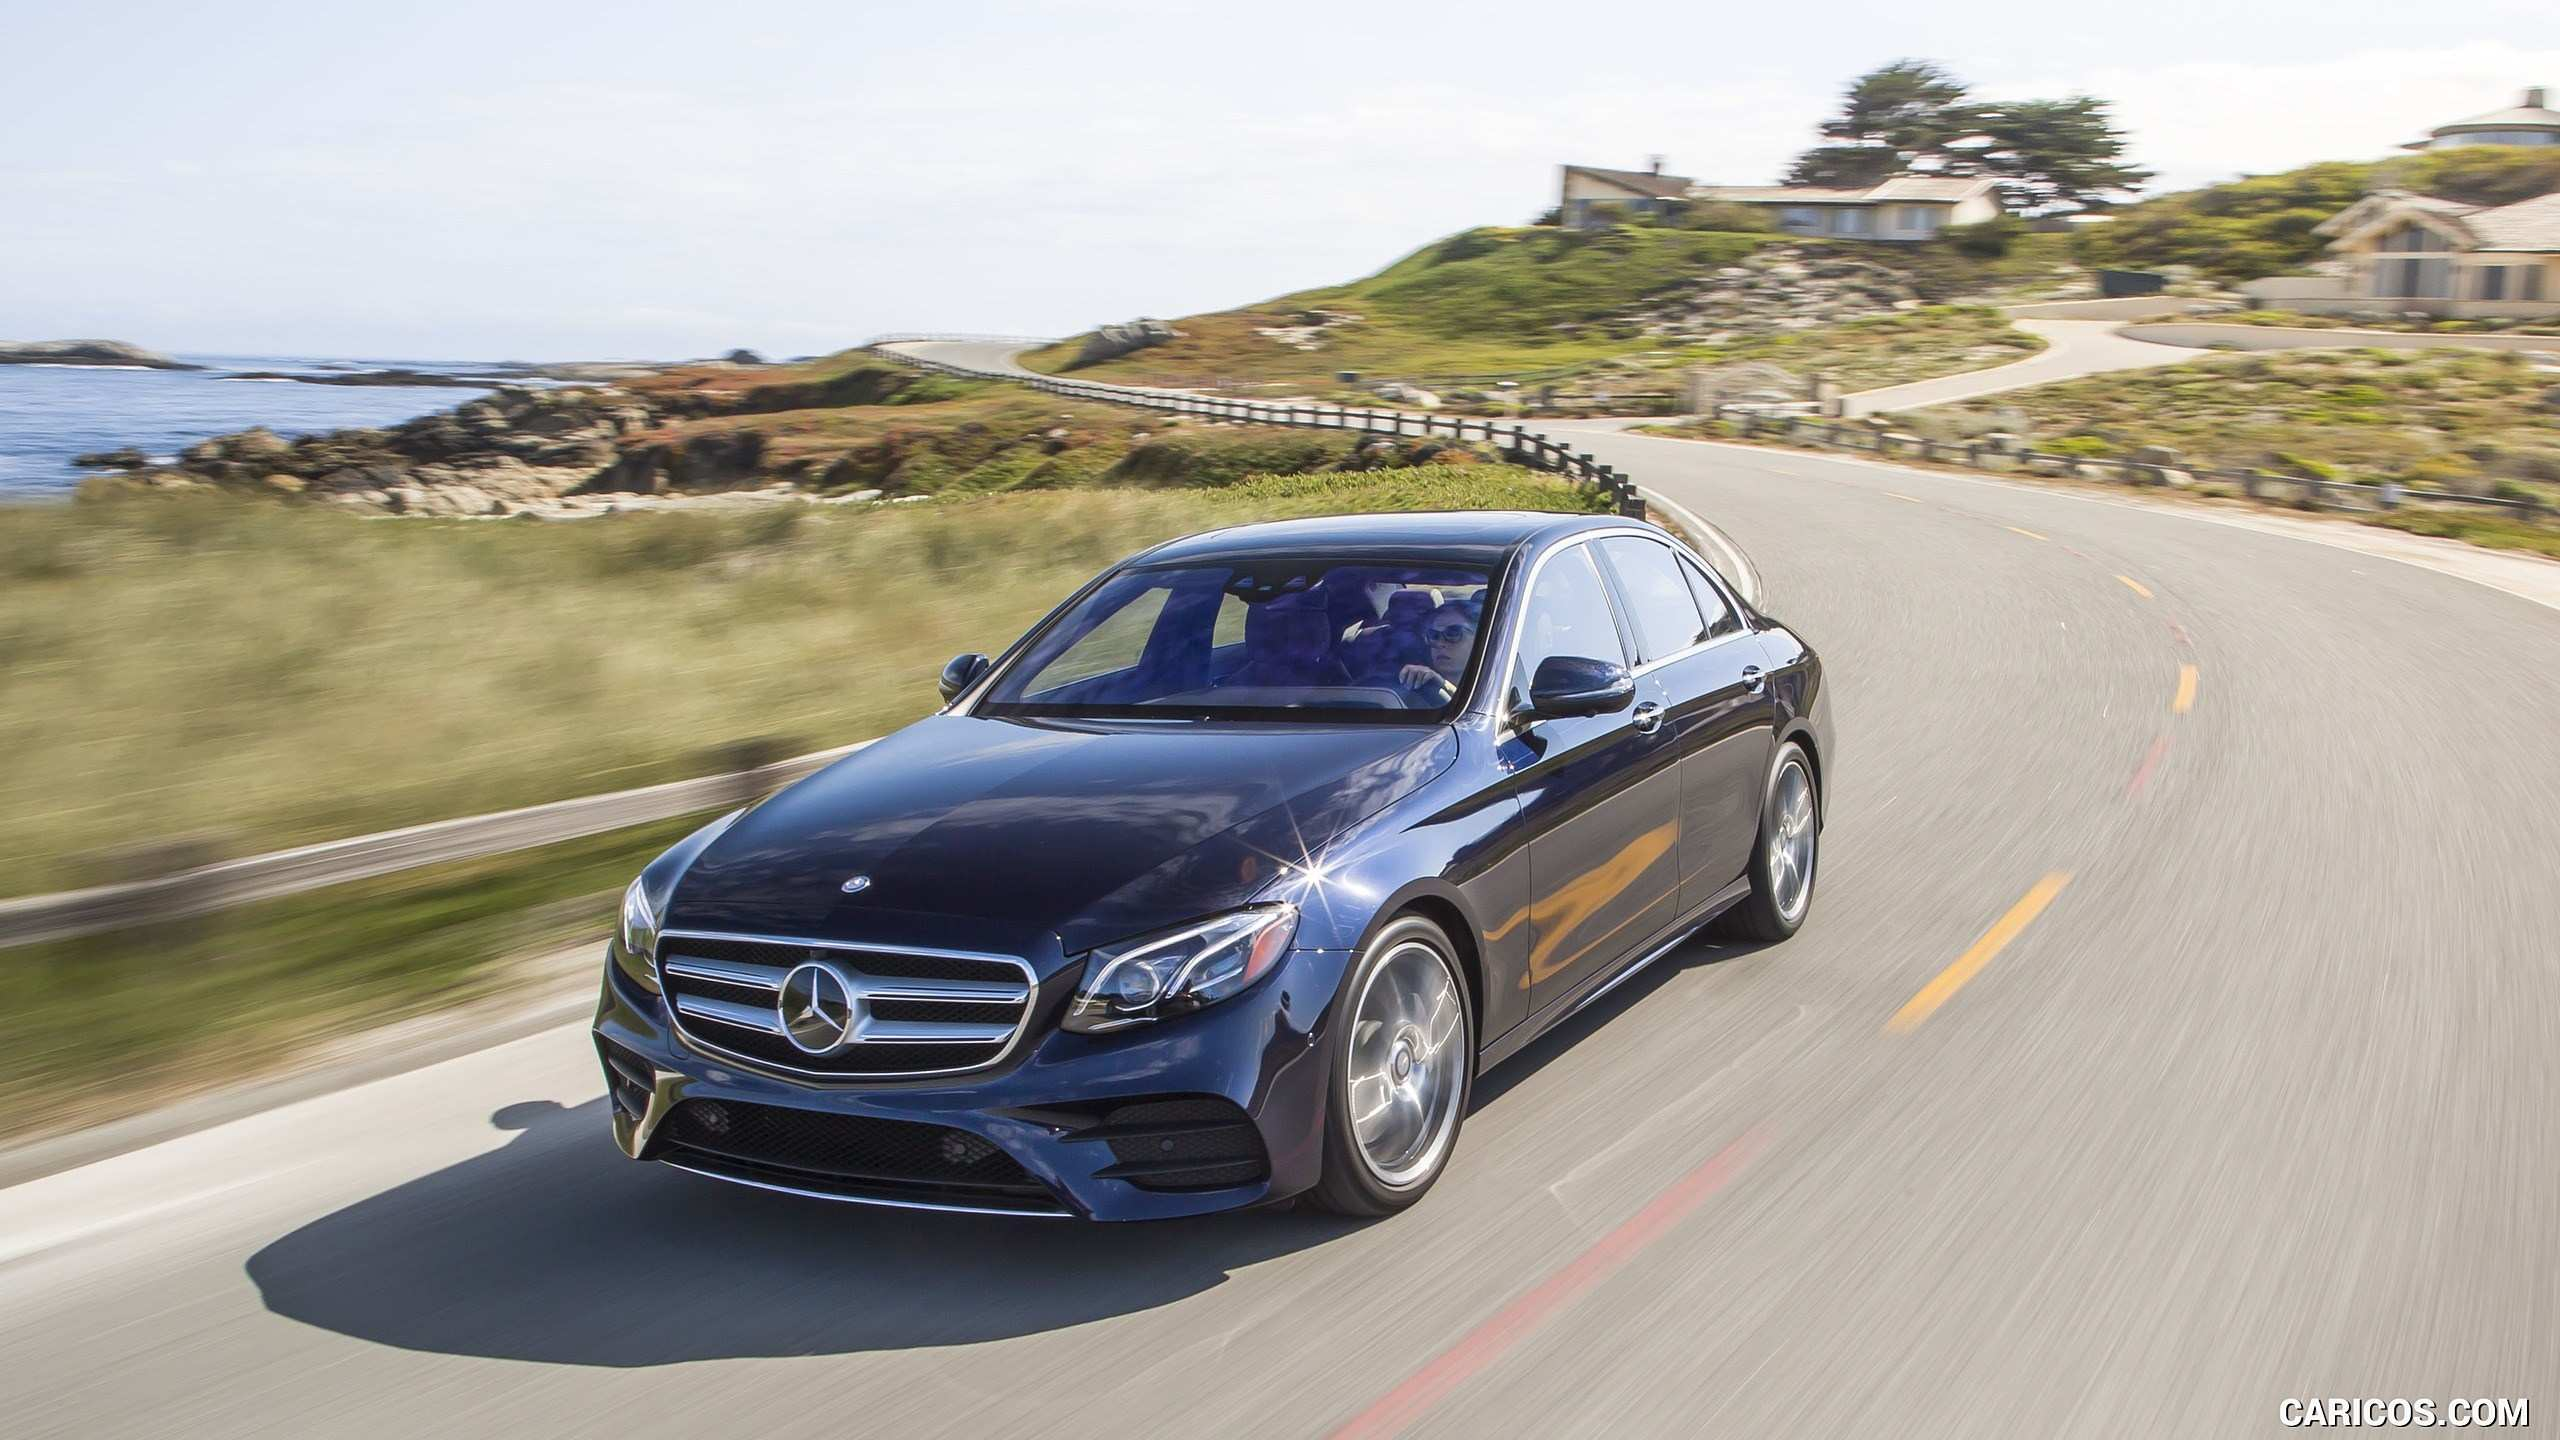 18 Gallery of The E300 Mercedes 2019 Specs History with The E300 Mercedes 2019 Specs